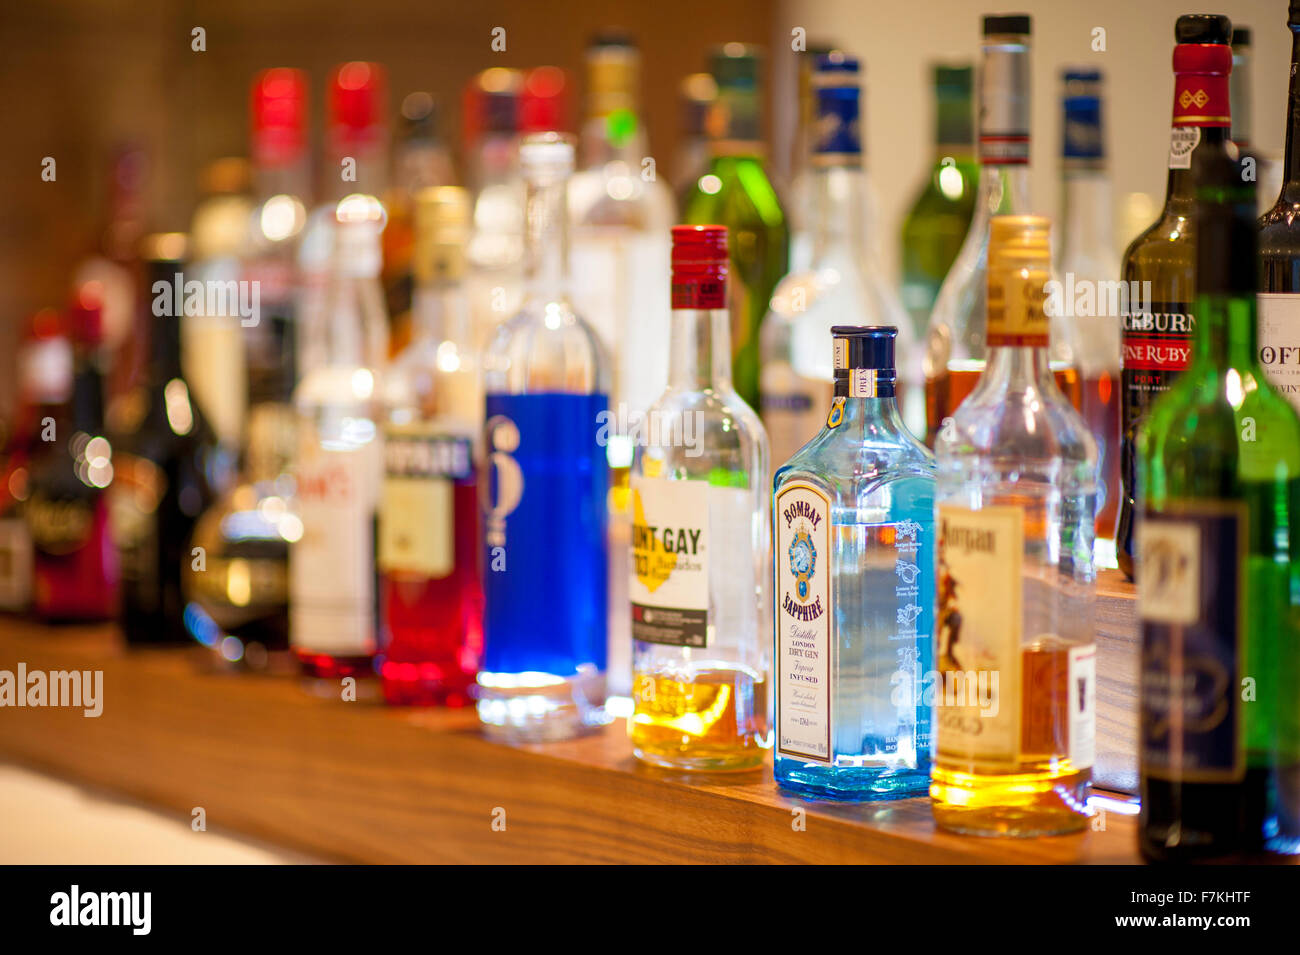 A line of spirits on a bar - Stock Image